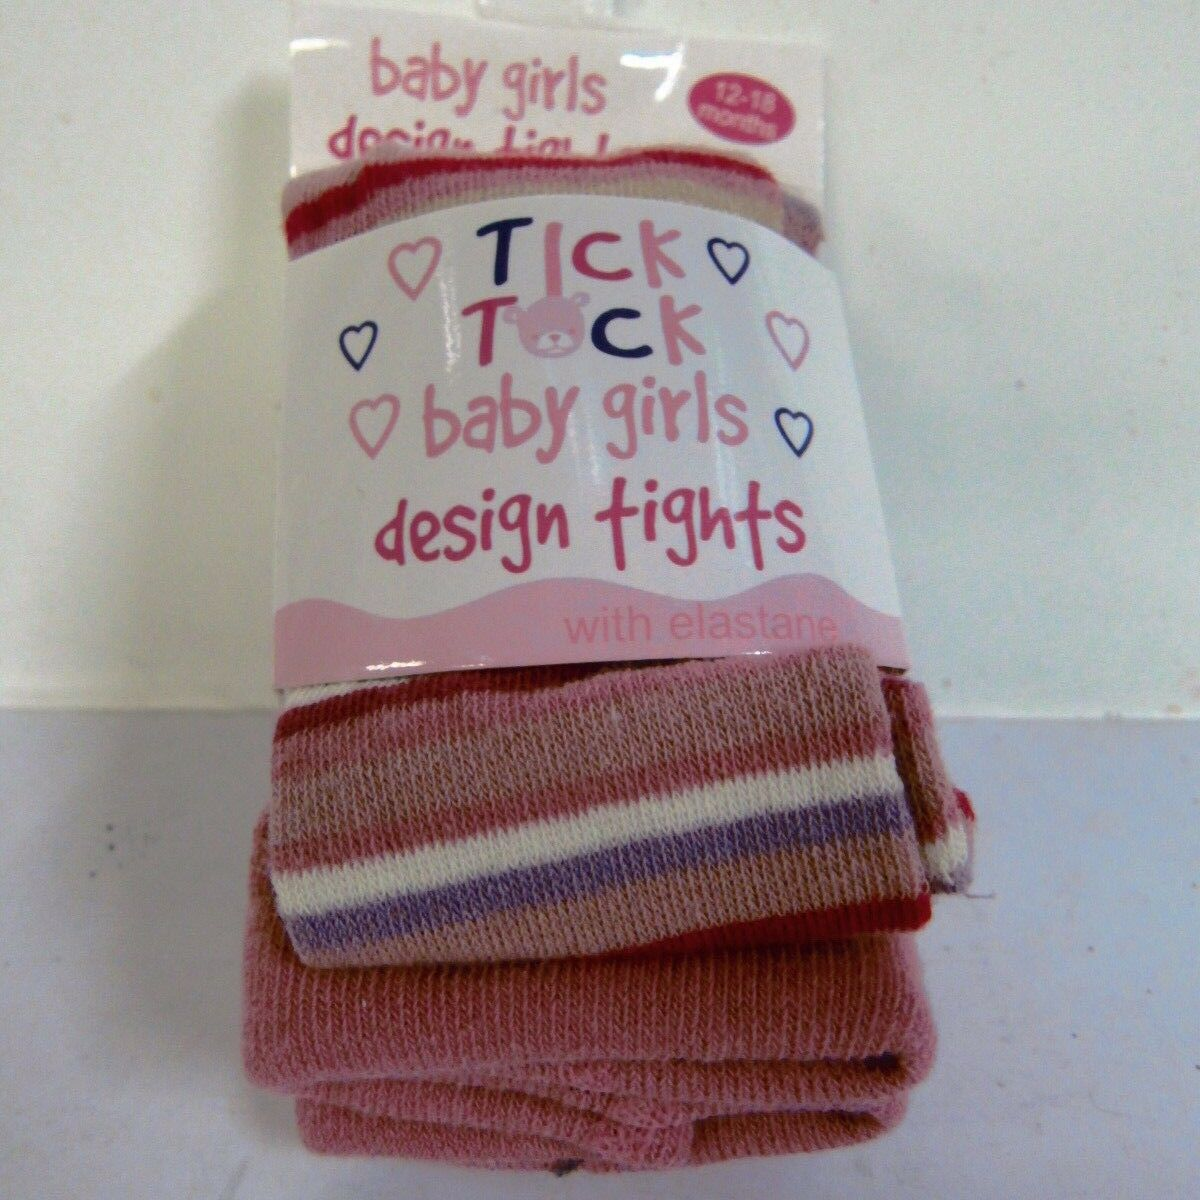 Baby Girls Tick Tock Cotton Rich Knit Tights pink stripy - 45B055